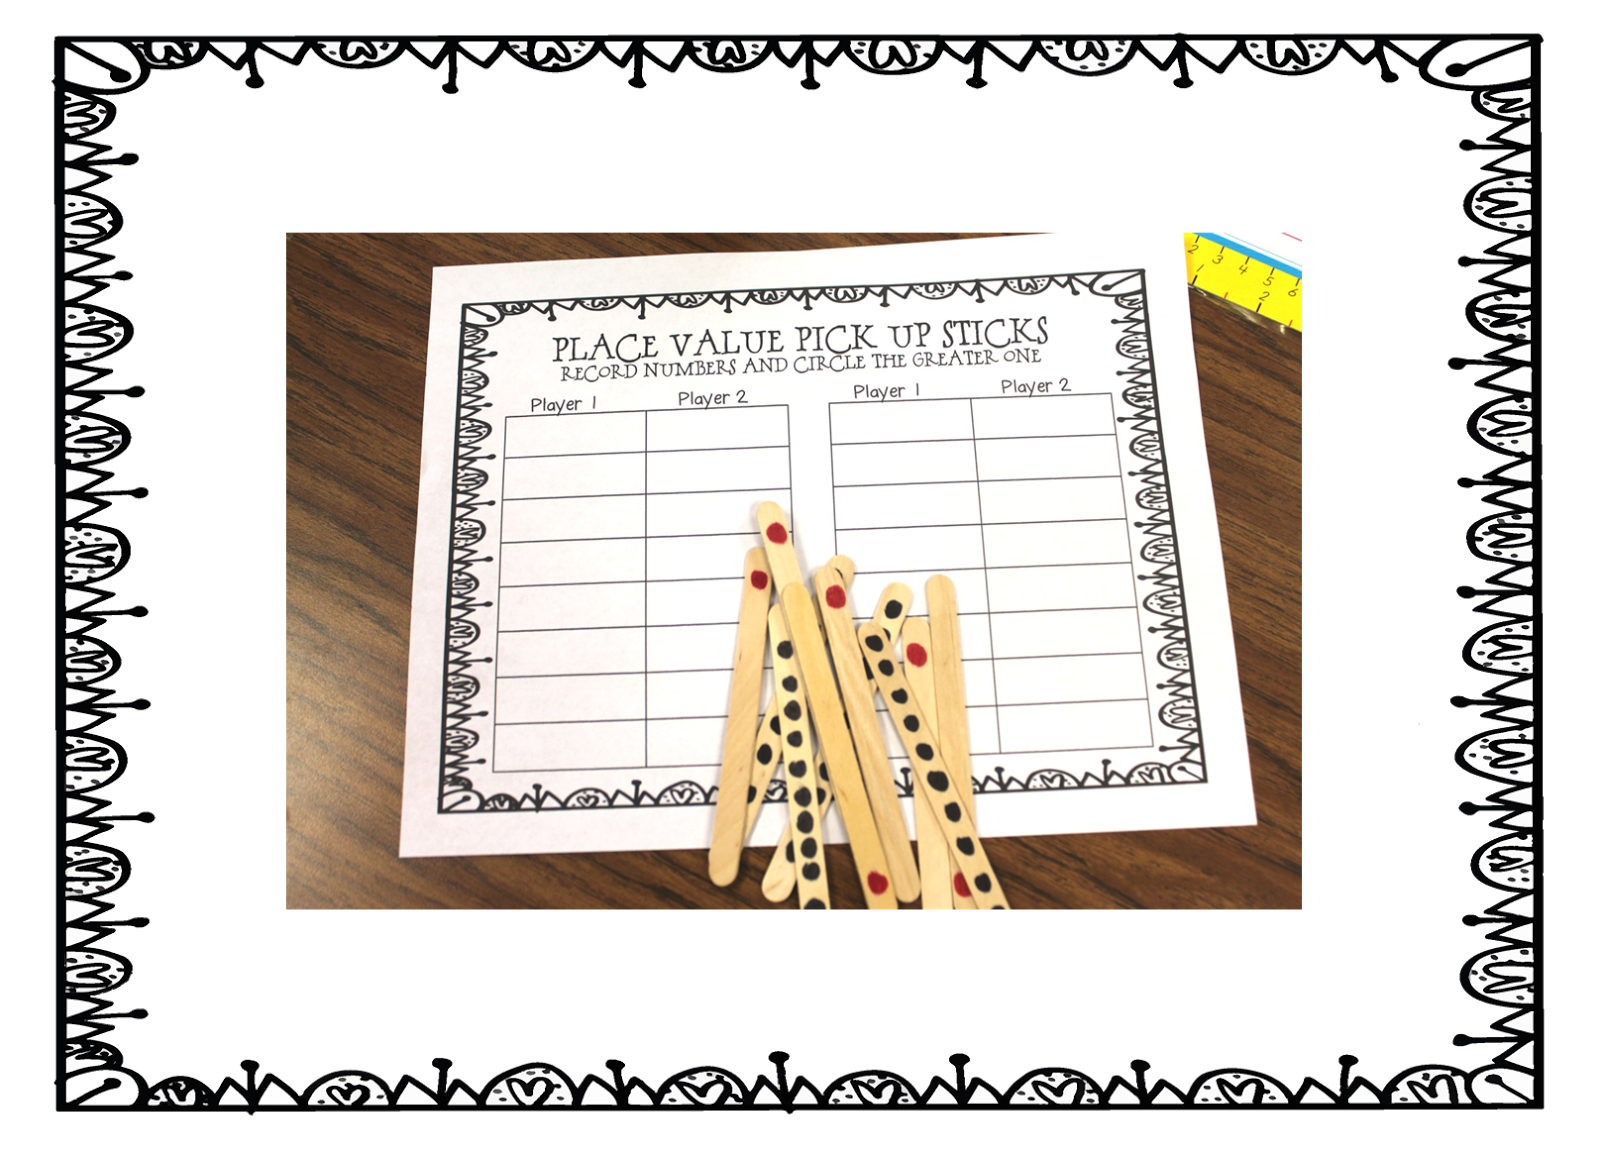 Worksheet How To Do Place Value In Math to do place value in math scalien how scalien